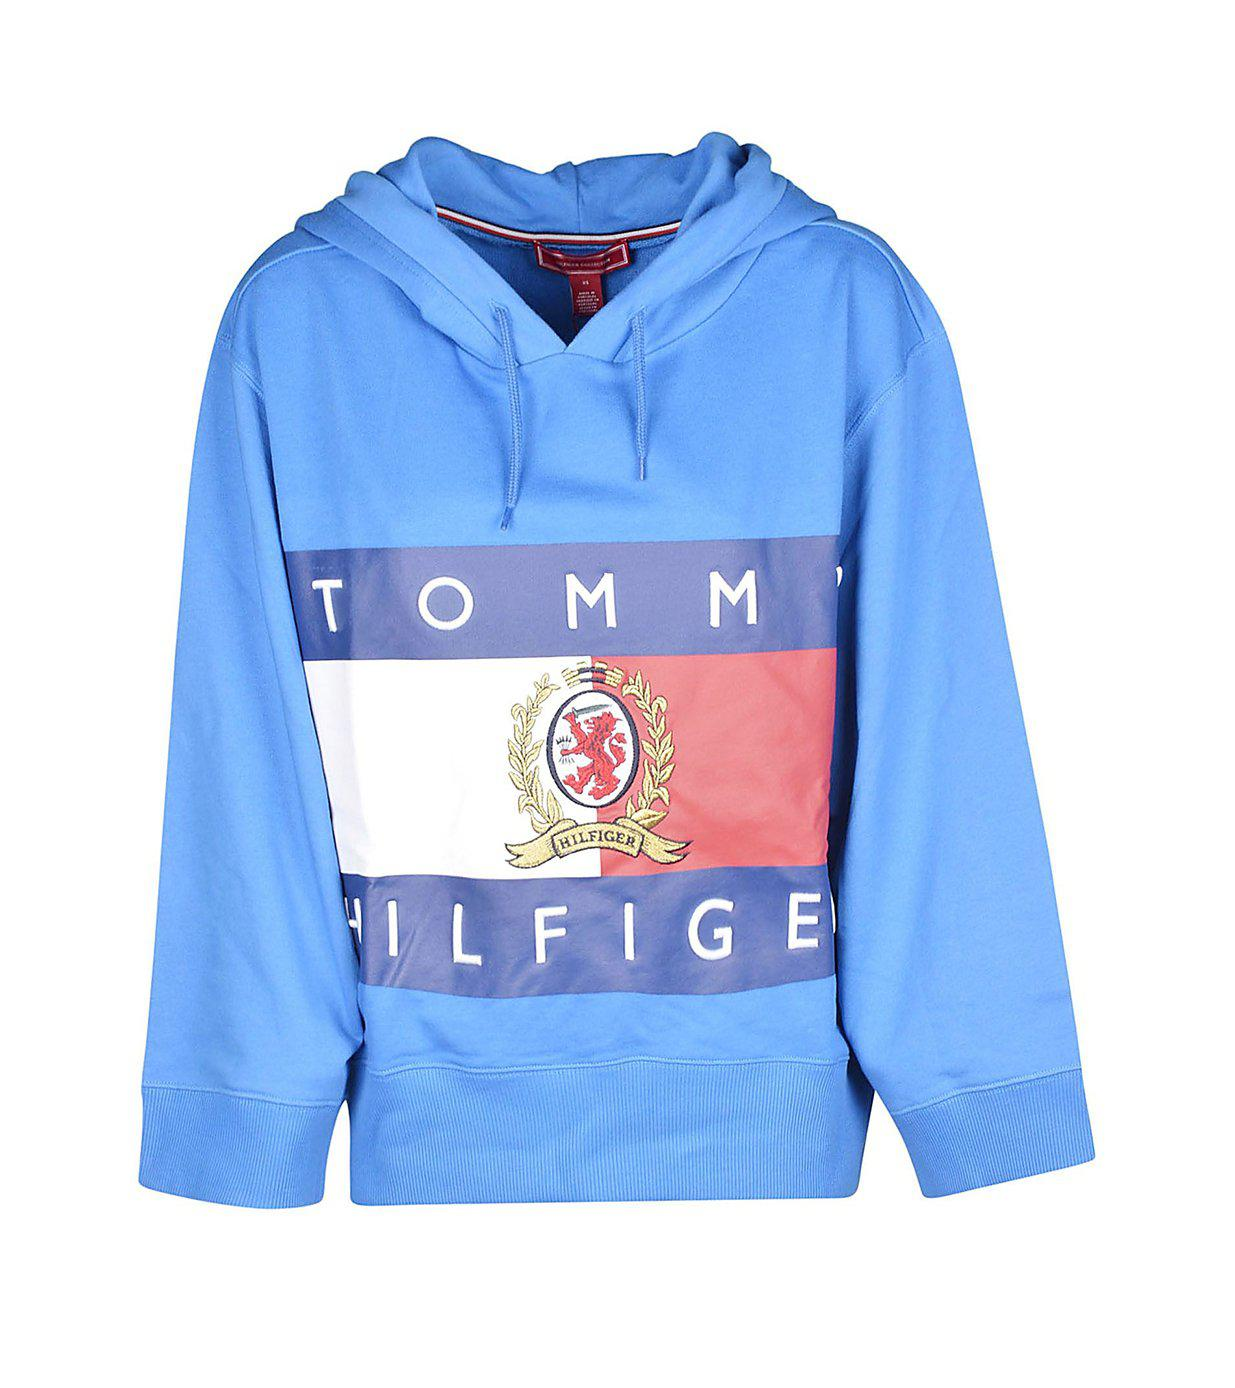 2338f3dfe7 Tommy Hilfiger Vintage Logo Cropped Hoodie By in Blue for Men - Lyst